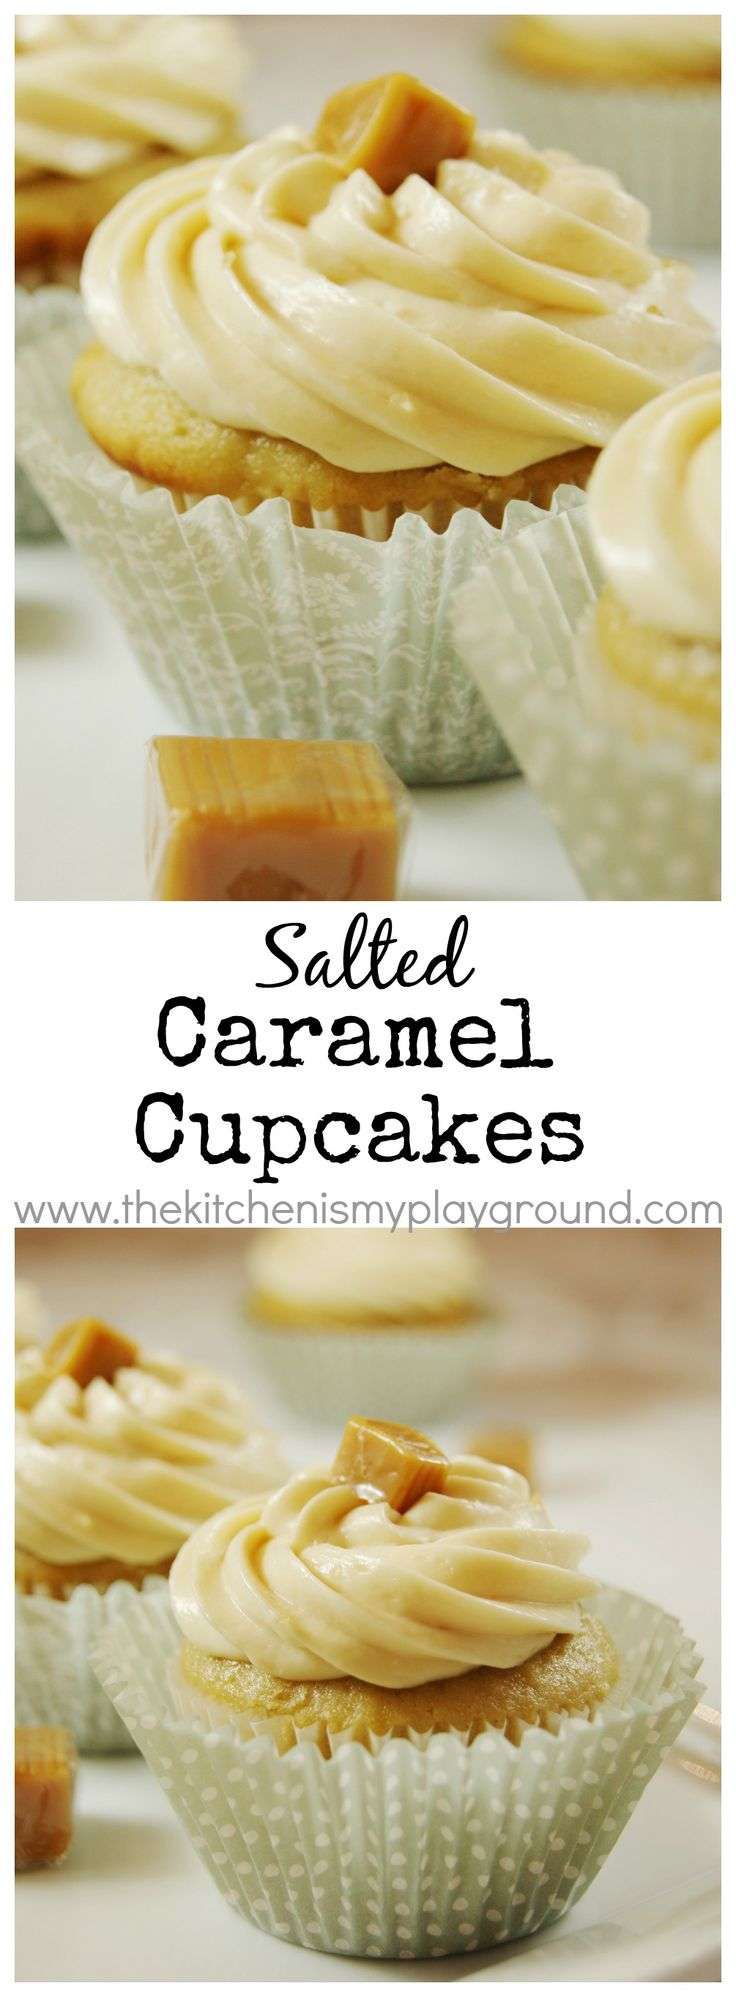 Salted Caramel Cupcakes with Caramel Buttercream Frosting www.thekitchenismyplayground.com